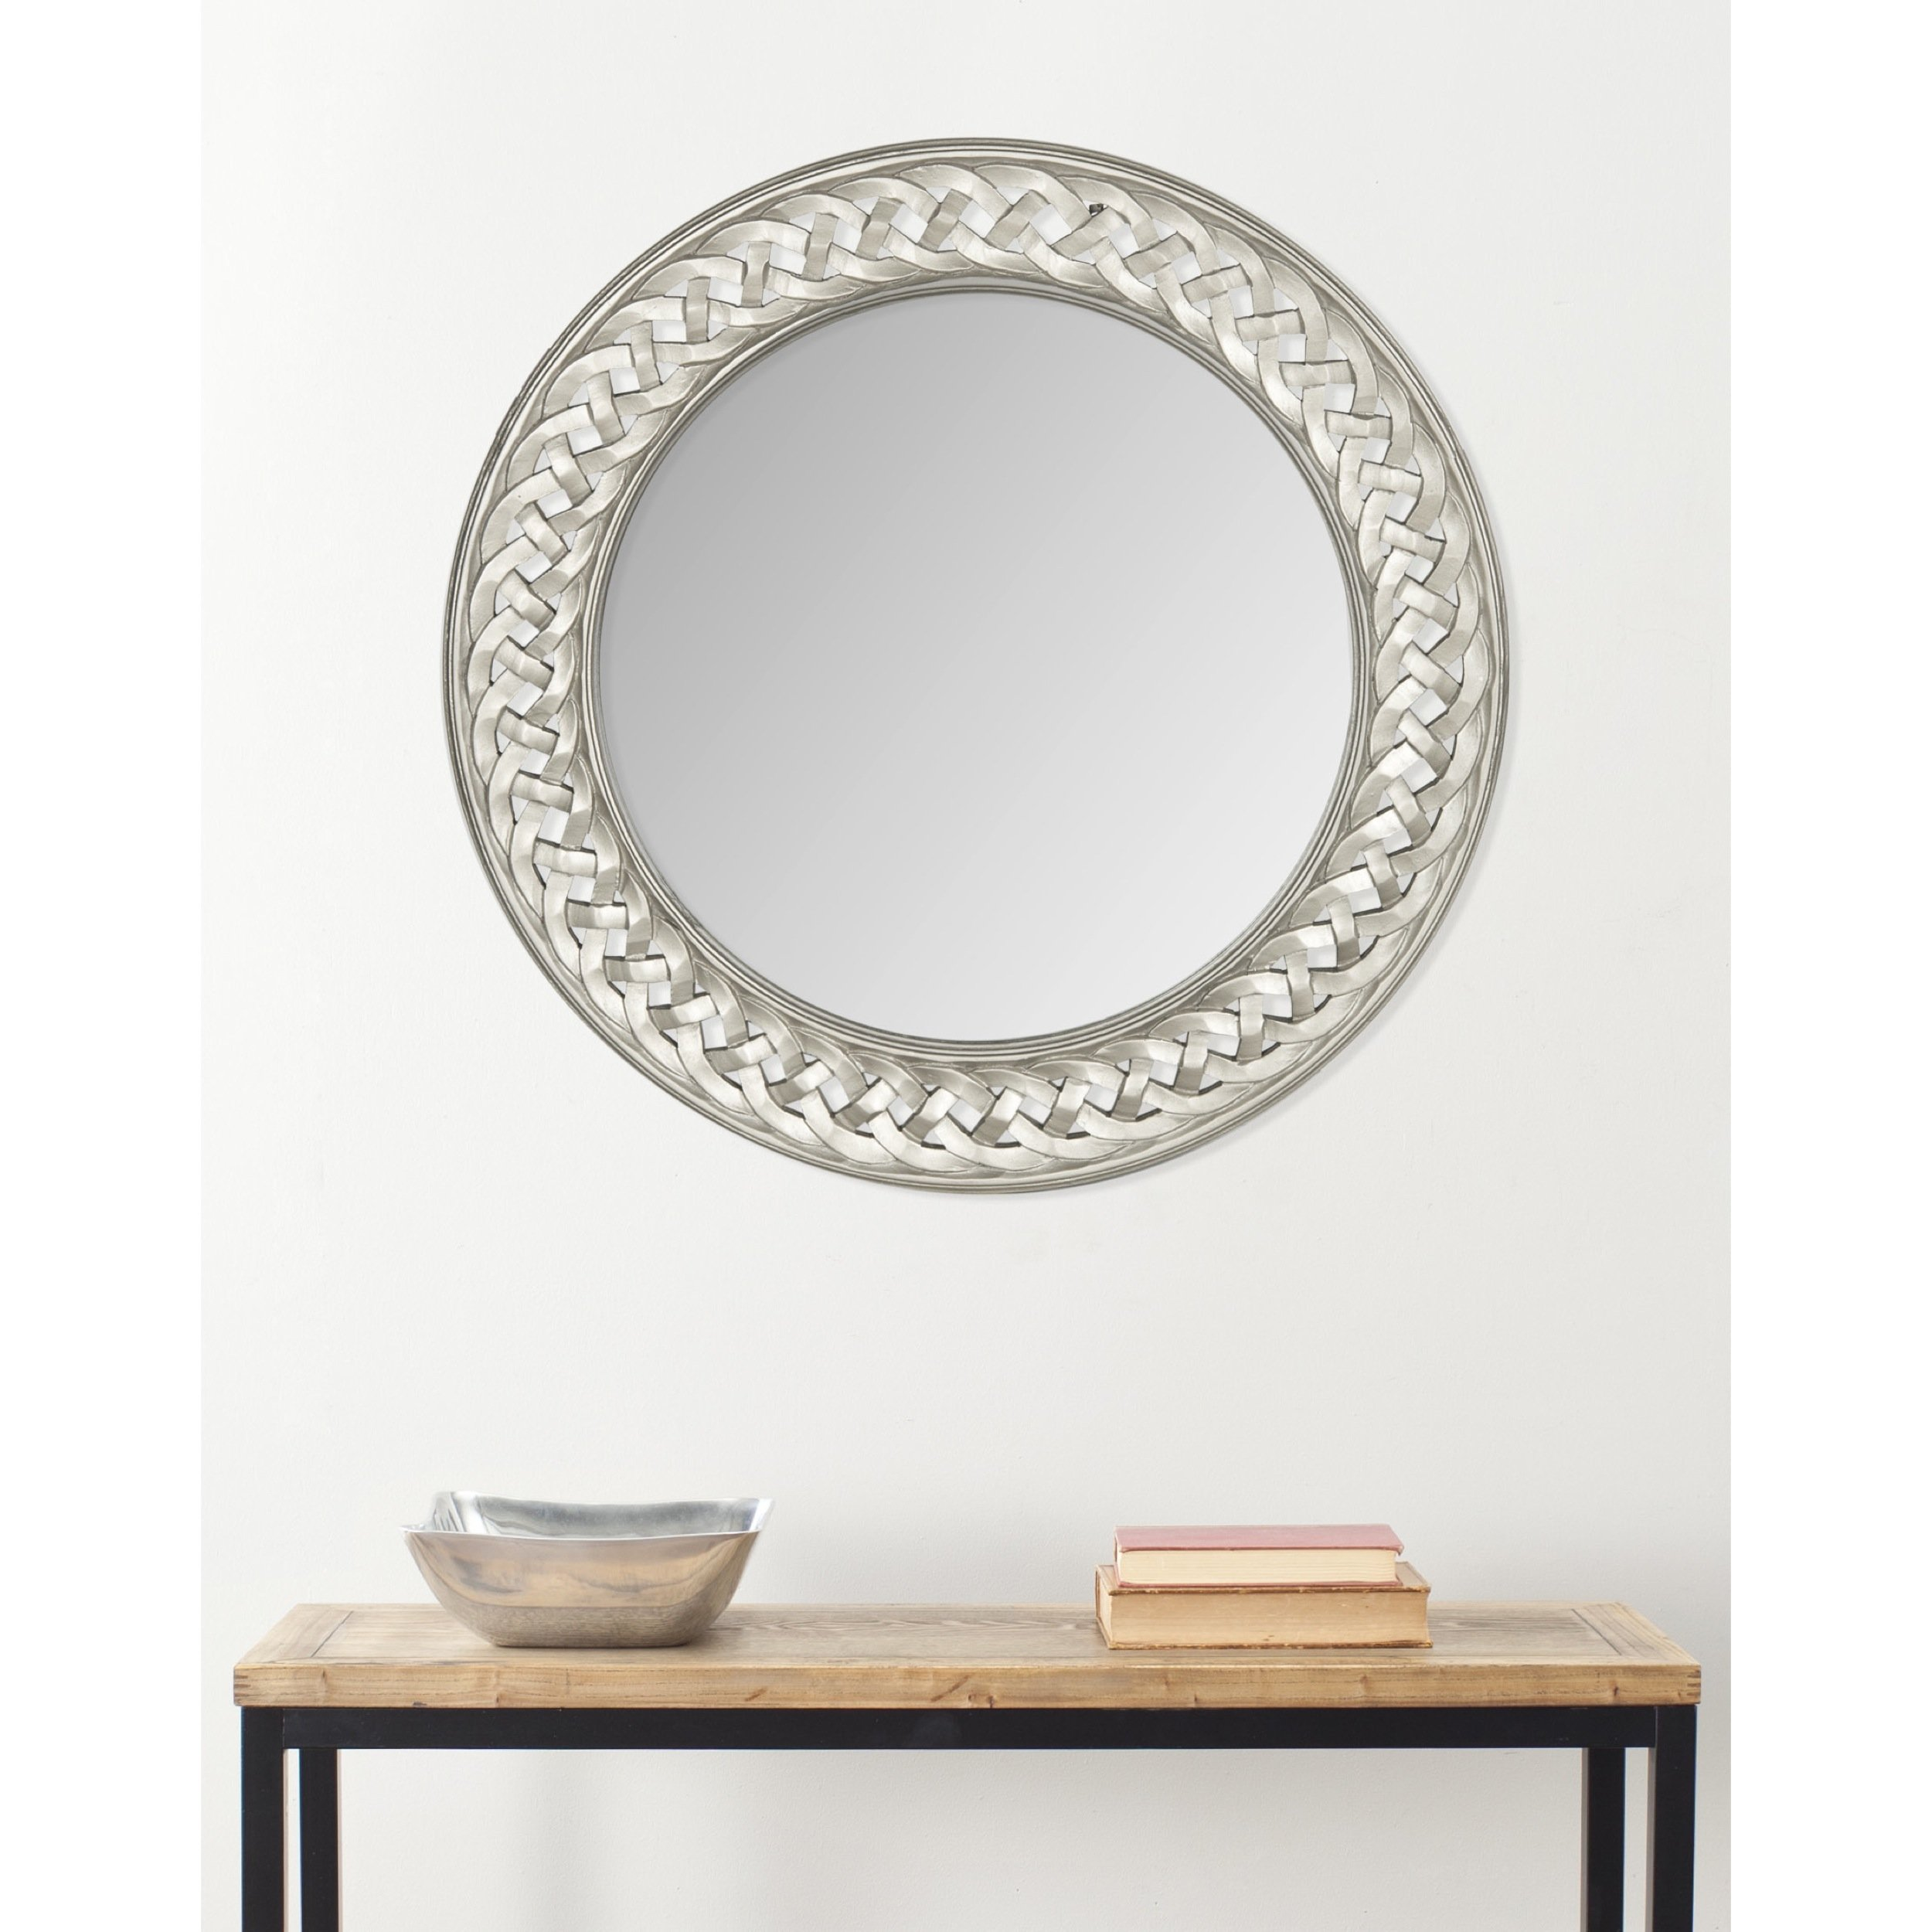 Safavieh Home Collection Braided Chain Mirror, Pewter